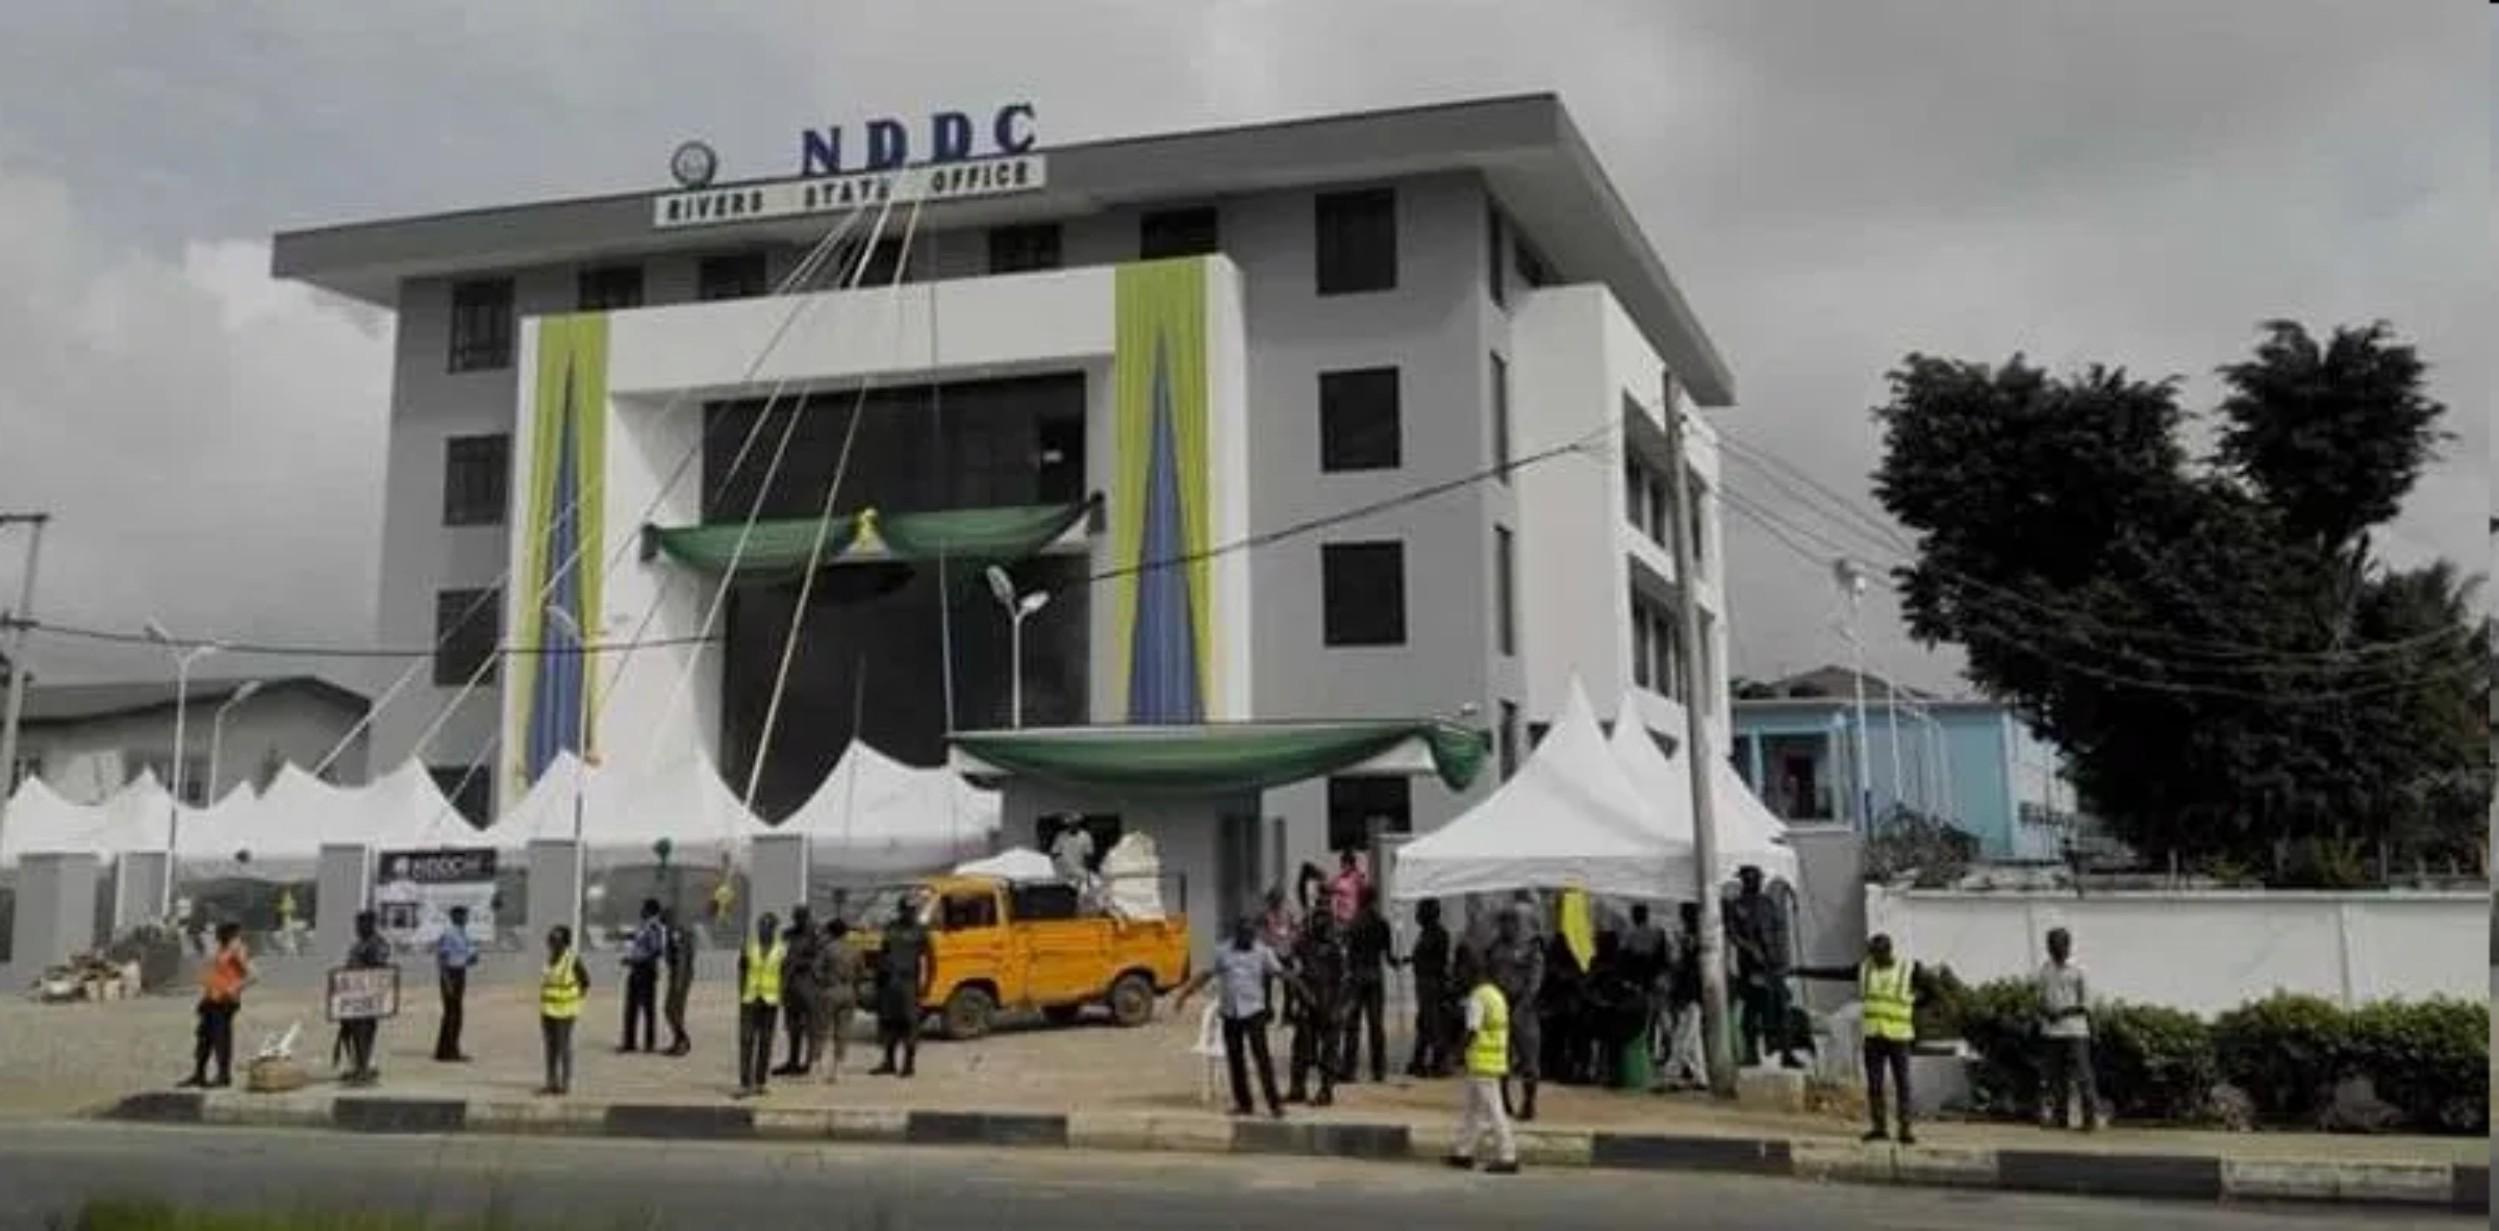 NDDC: The perplexity  of a forensic auditing